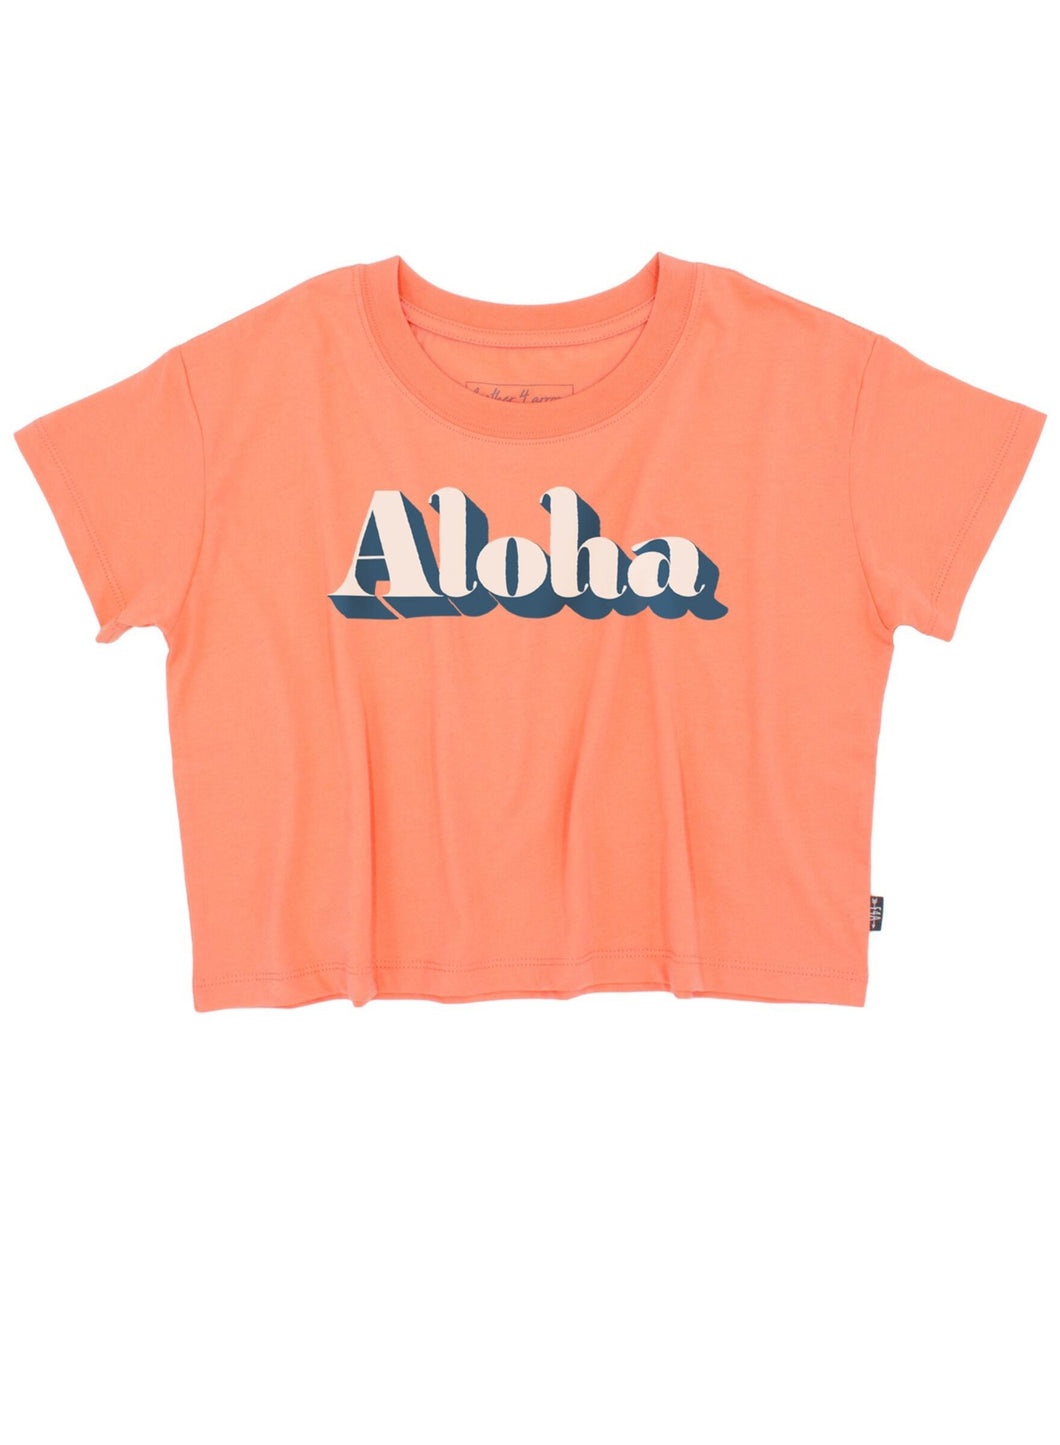 Aloha Crop Tee in Coral Crush